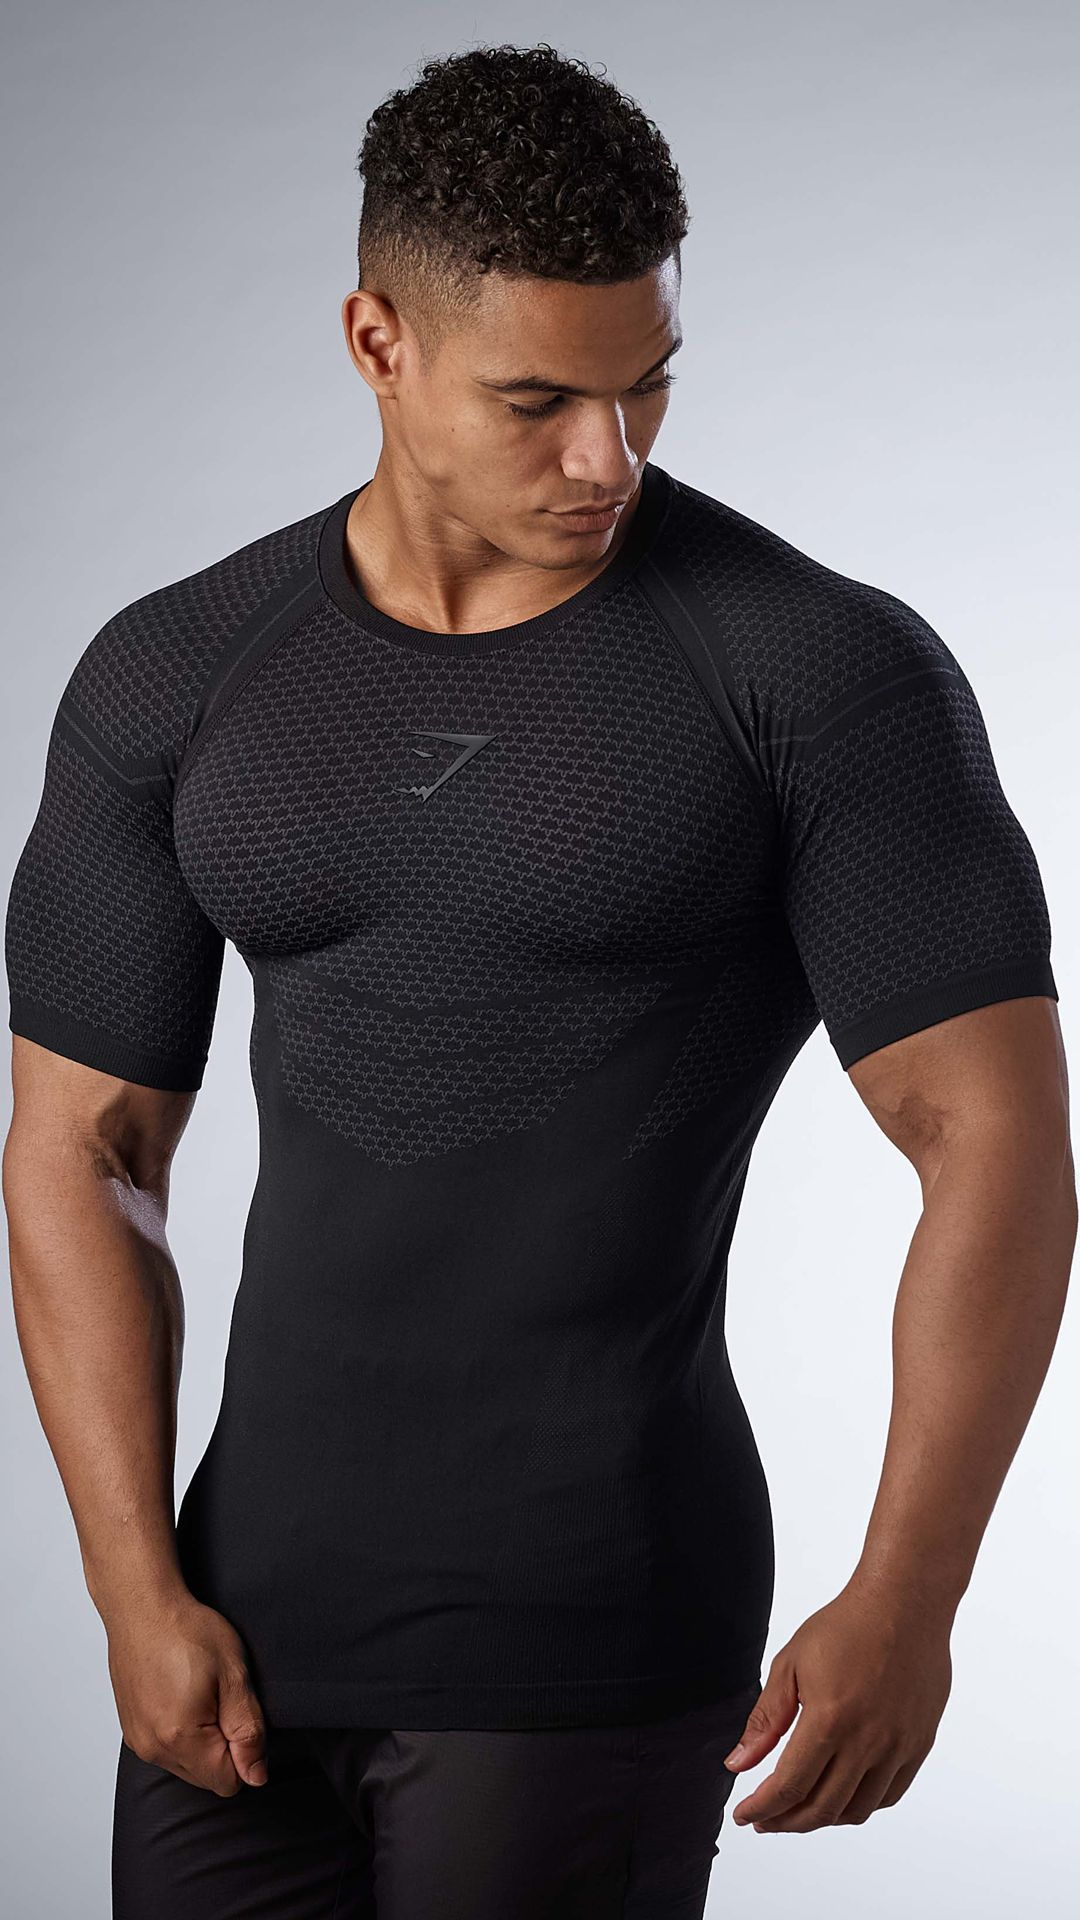 9b5cbc4186 A firm favourite, the Men's Onyx T-shirt is back and better than ever  before. With a second-skin feel, seamless knit, and a 4-way stretch fit, ...